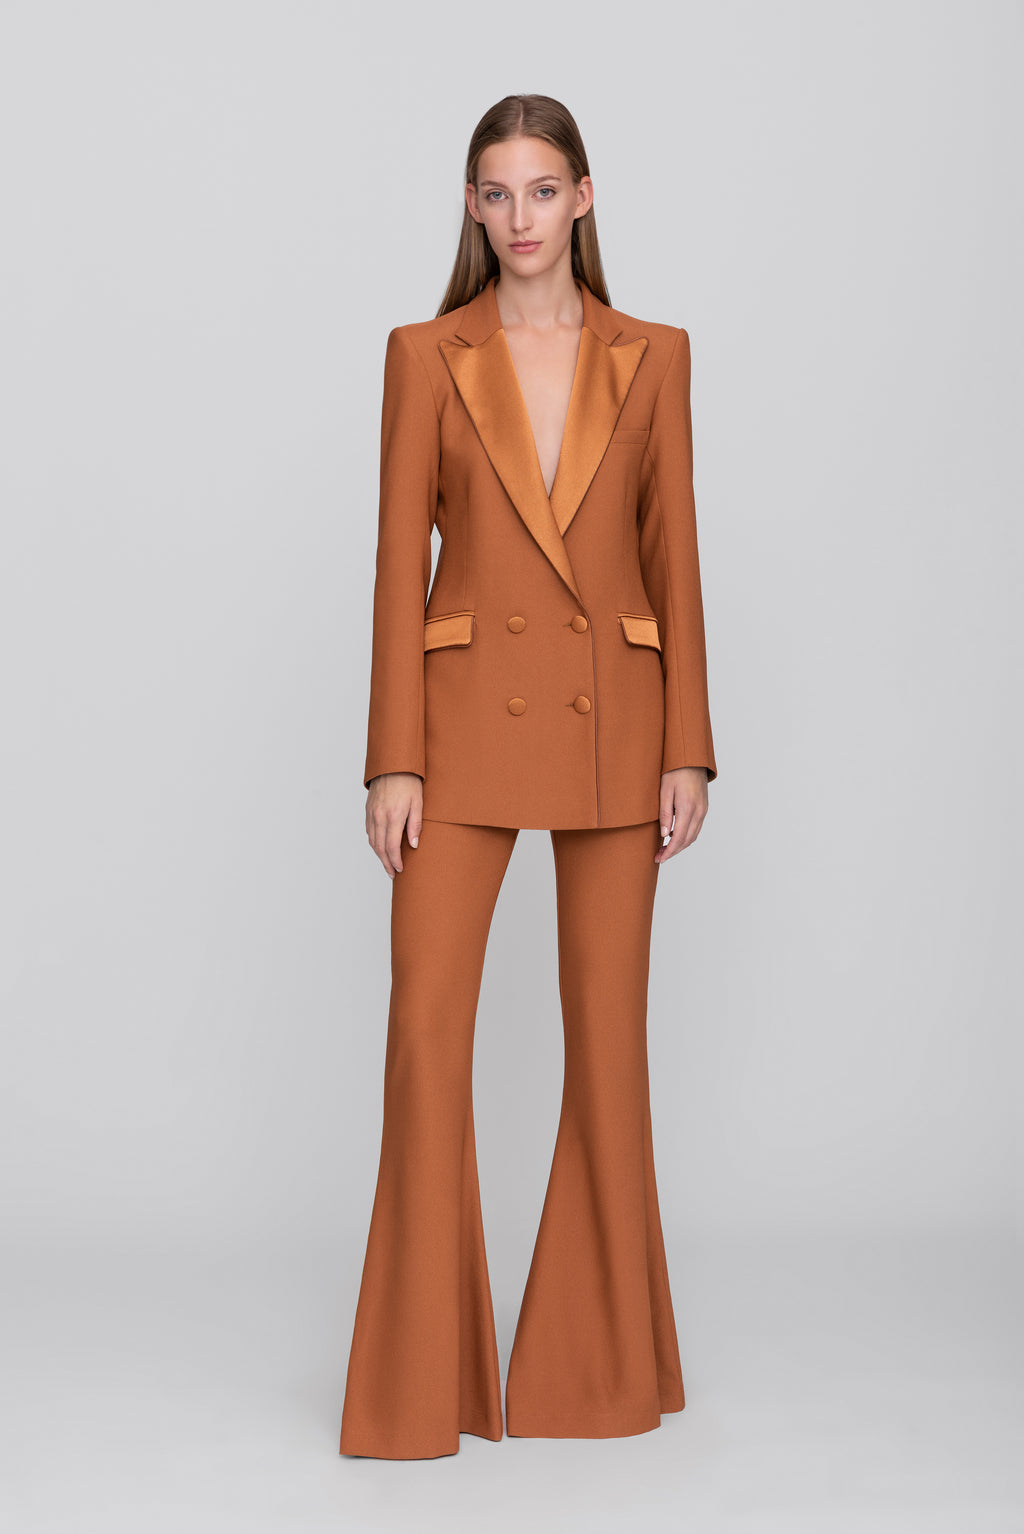 The Rust Bianca Blazer